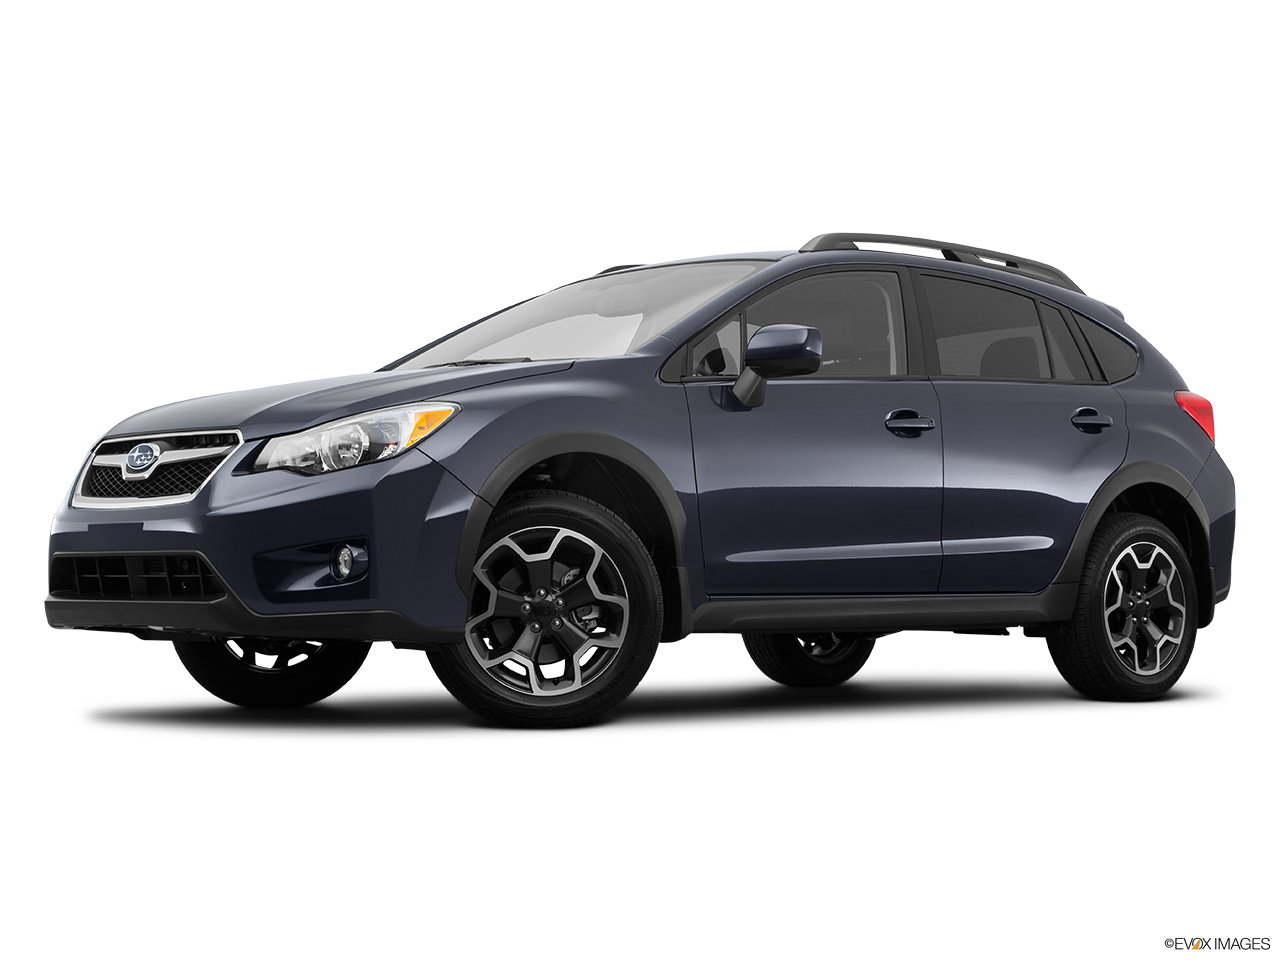 2014 Subaru Xv Crosstrek 2 0i Limited >> 2014 Subaru XV Crosstrek 5dr Automatic 2.0i Limited - Low/wide front 5/8